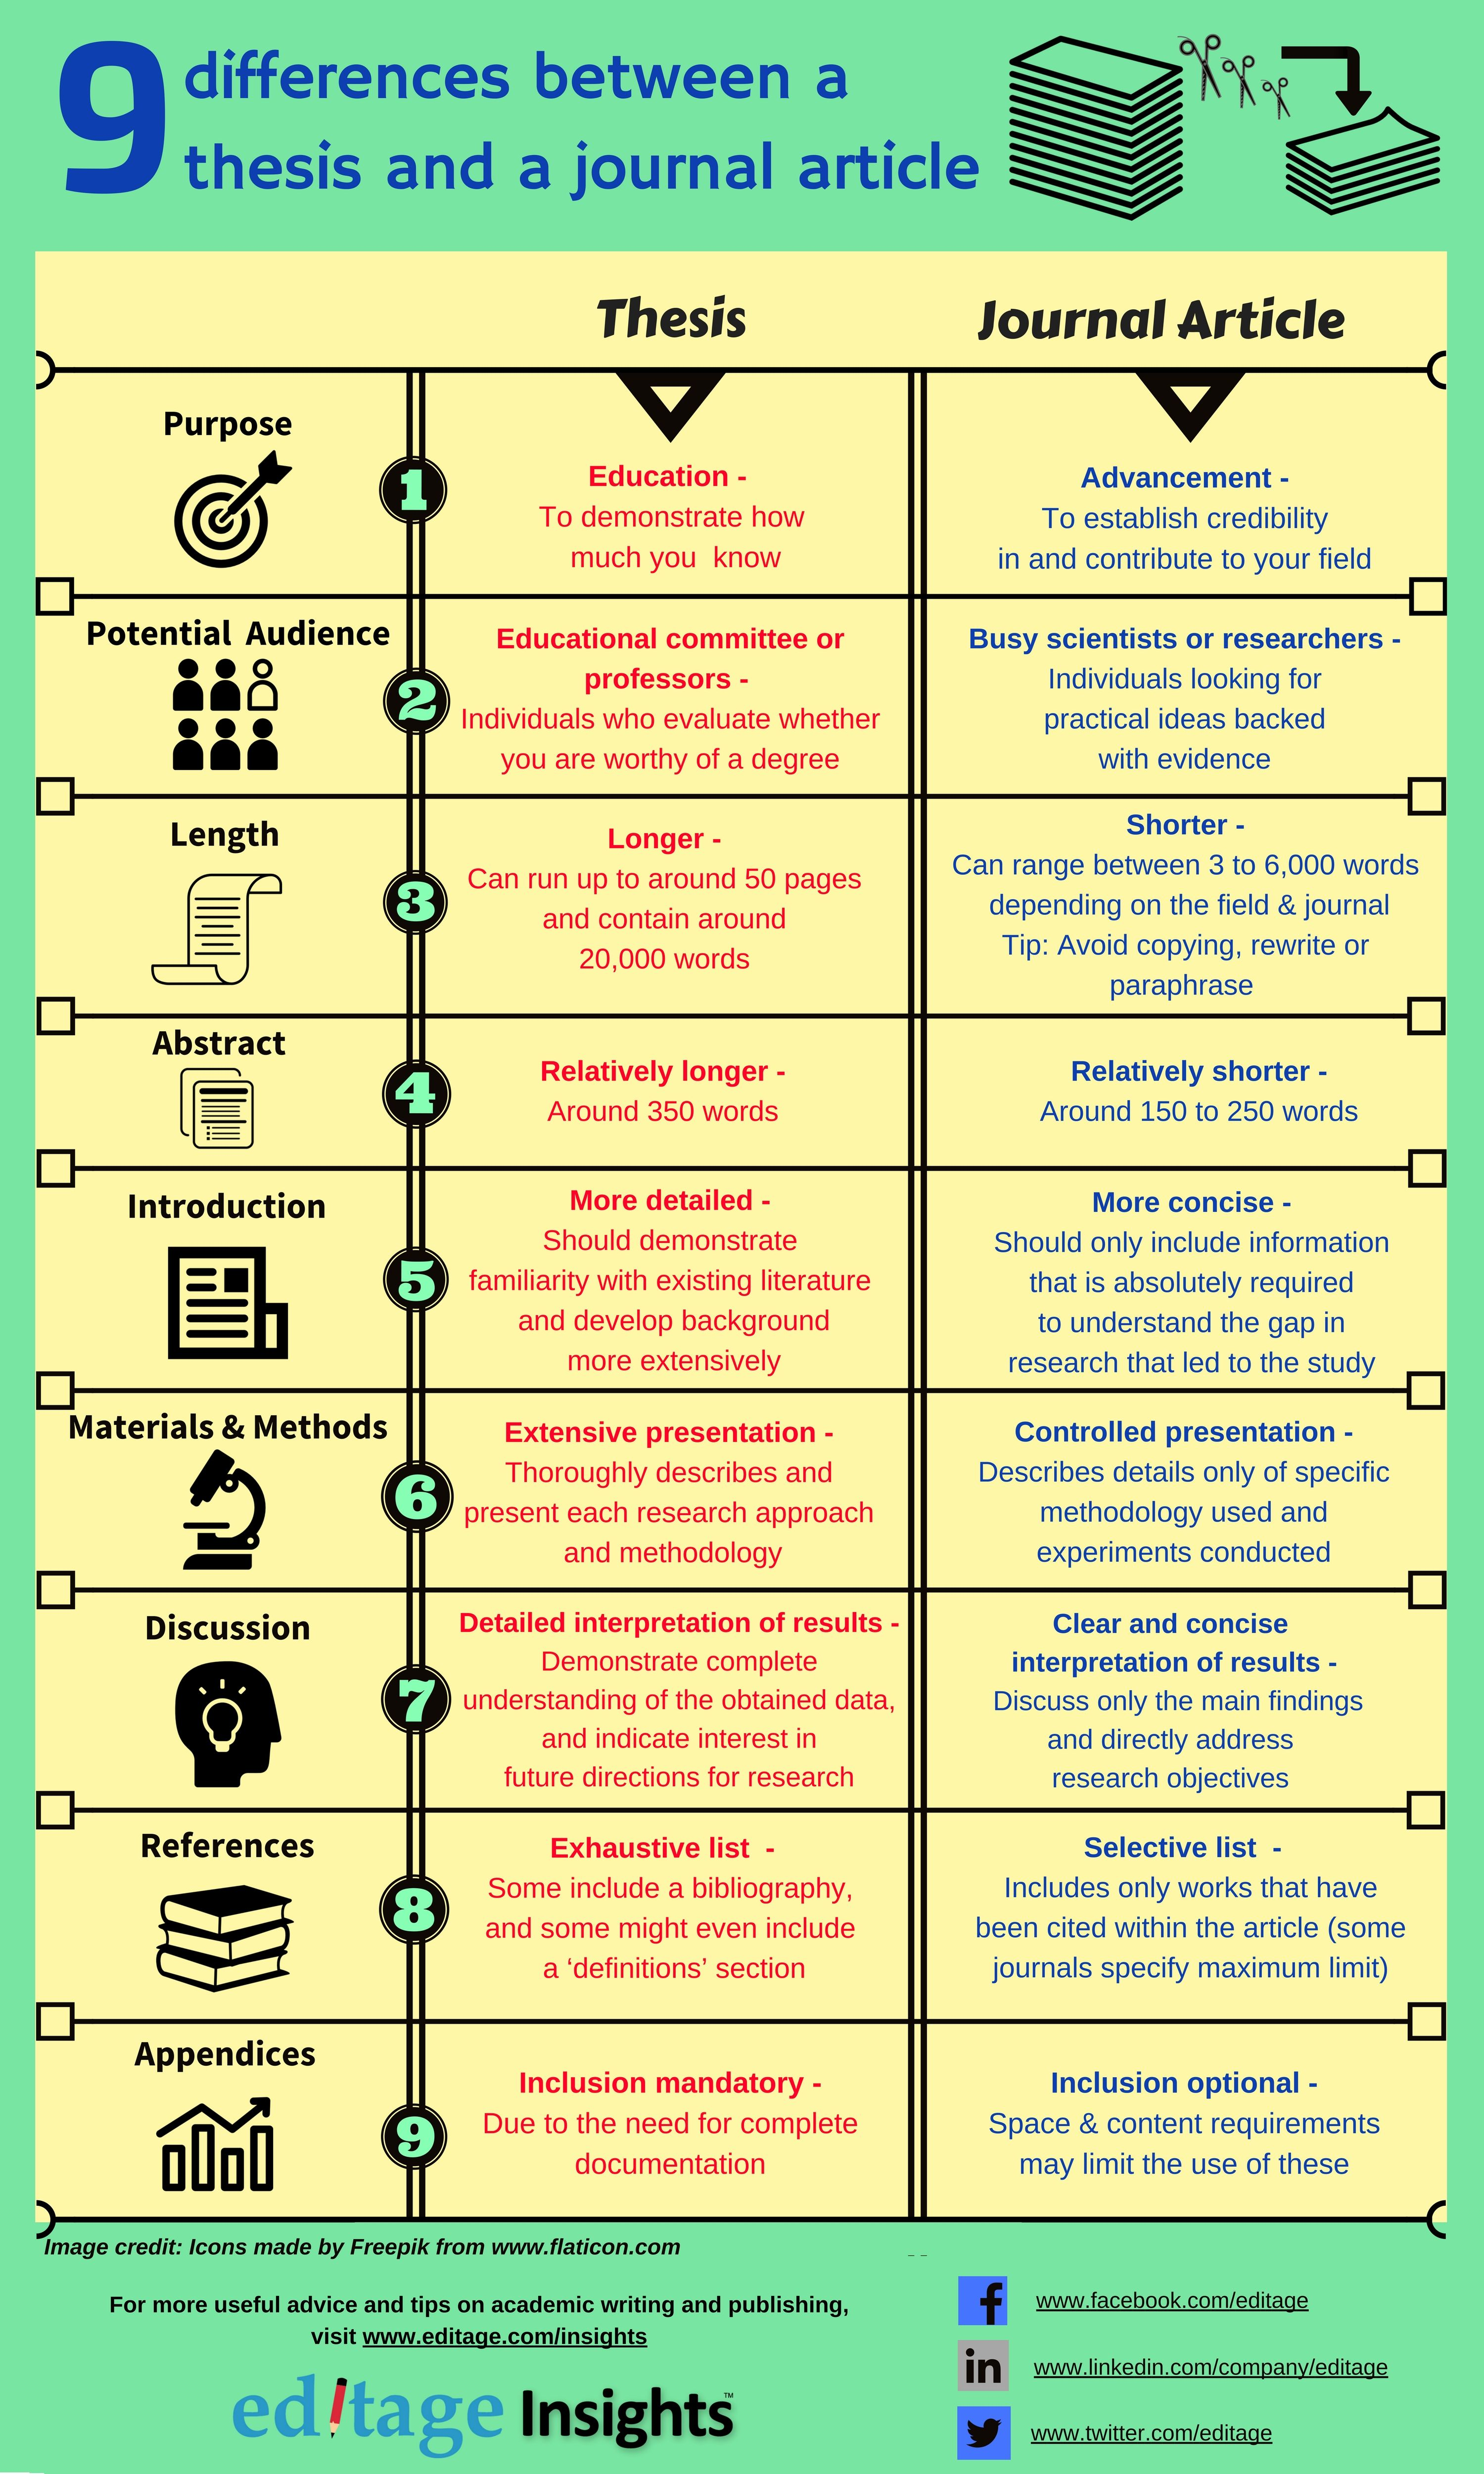 9 Difference Between A Thesi And Journal Article Social Media Infographic Academic Writing Dissertation Research Paper